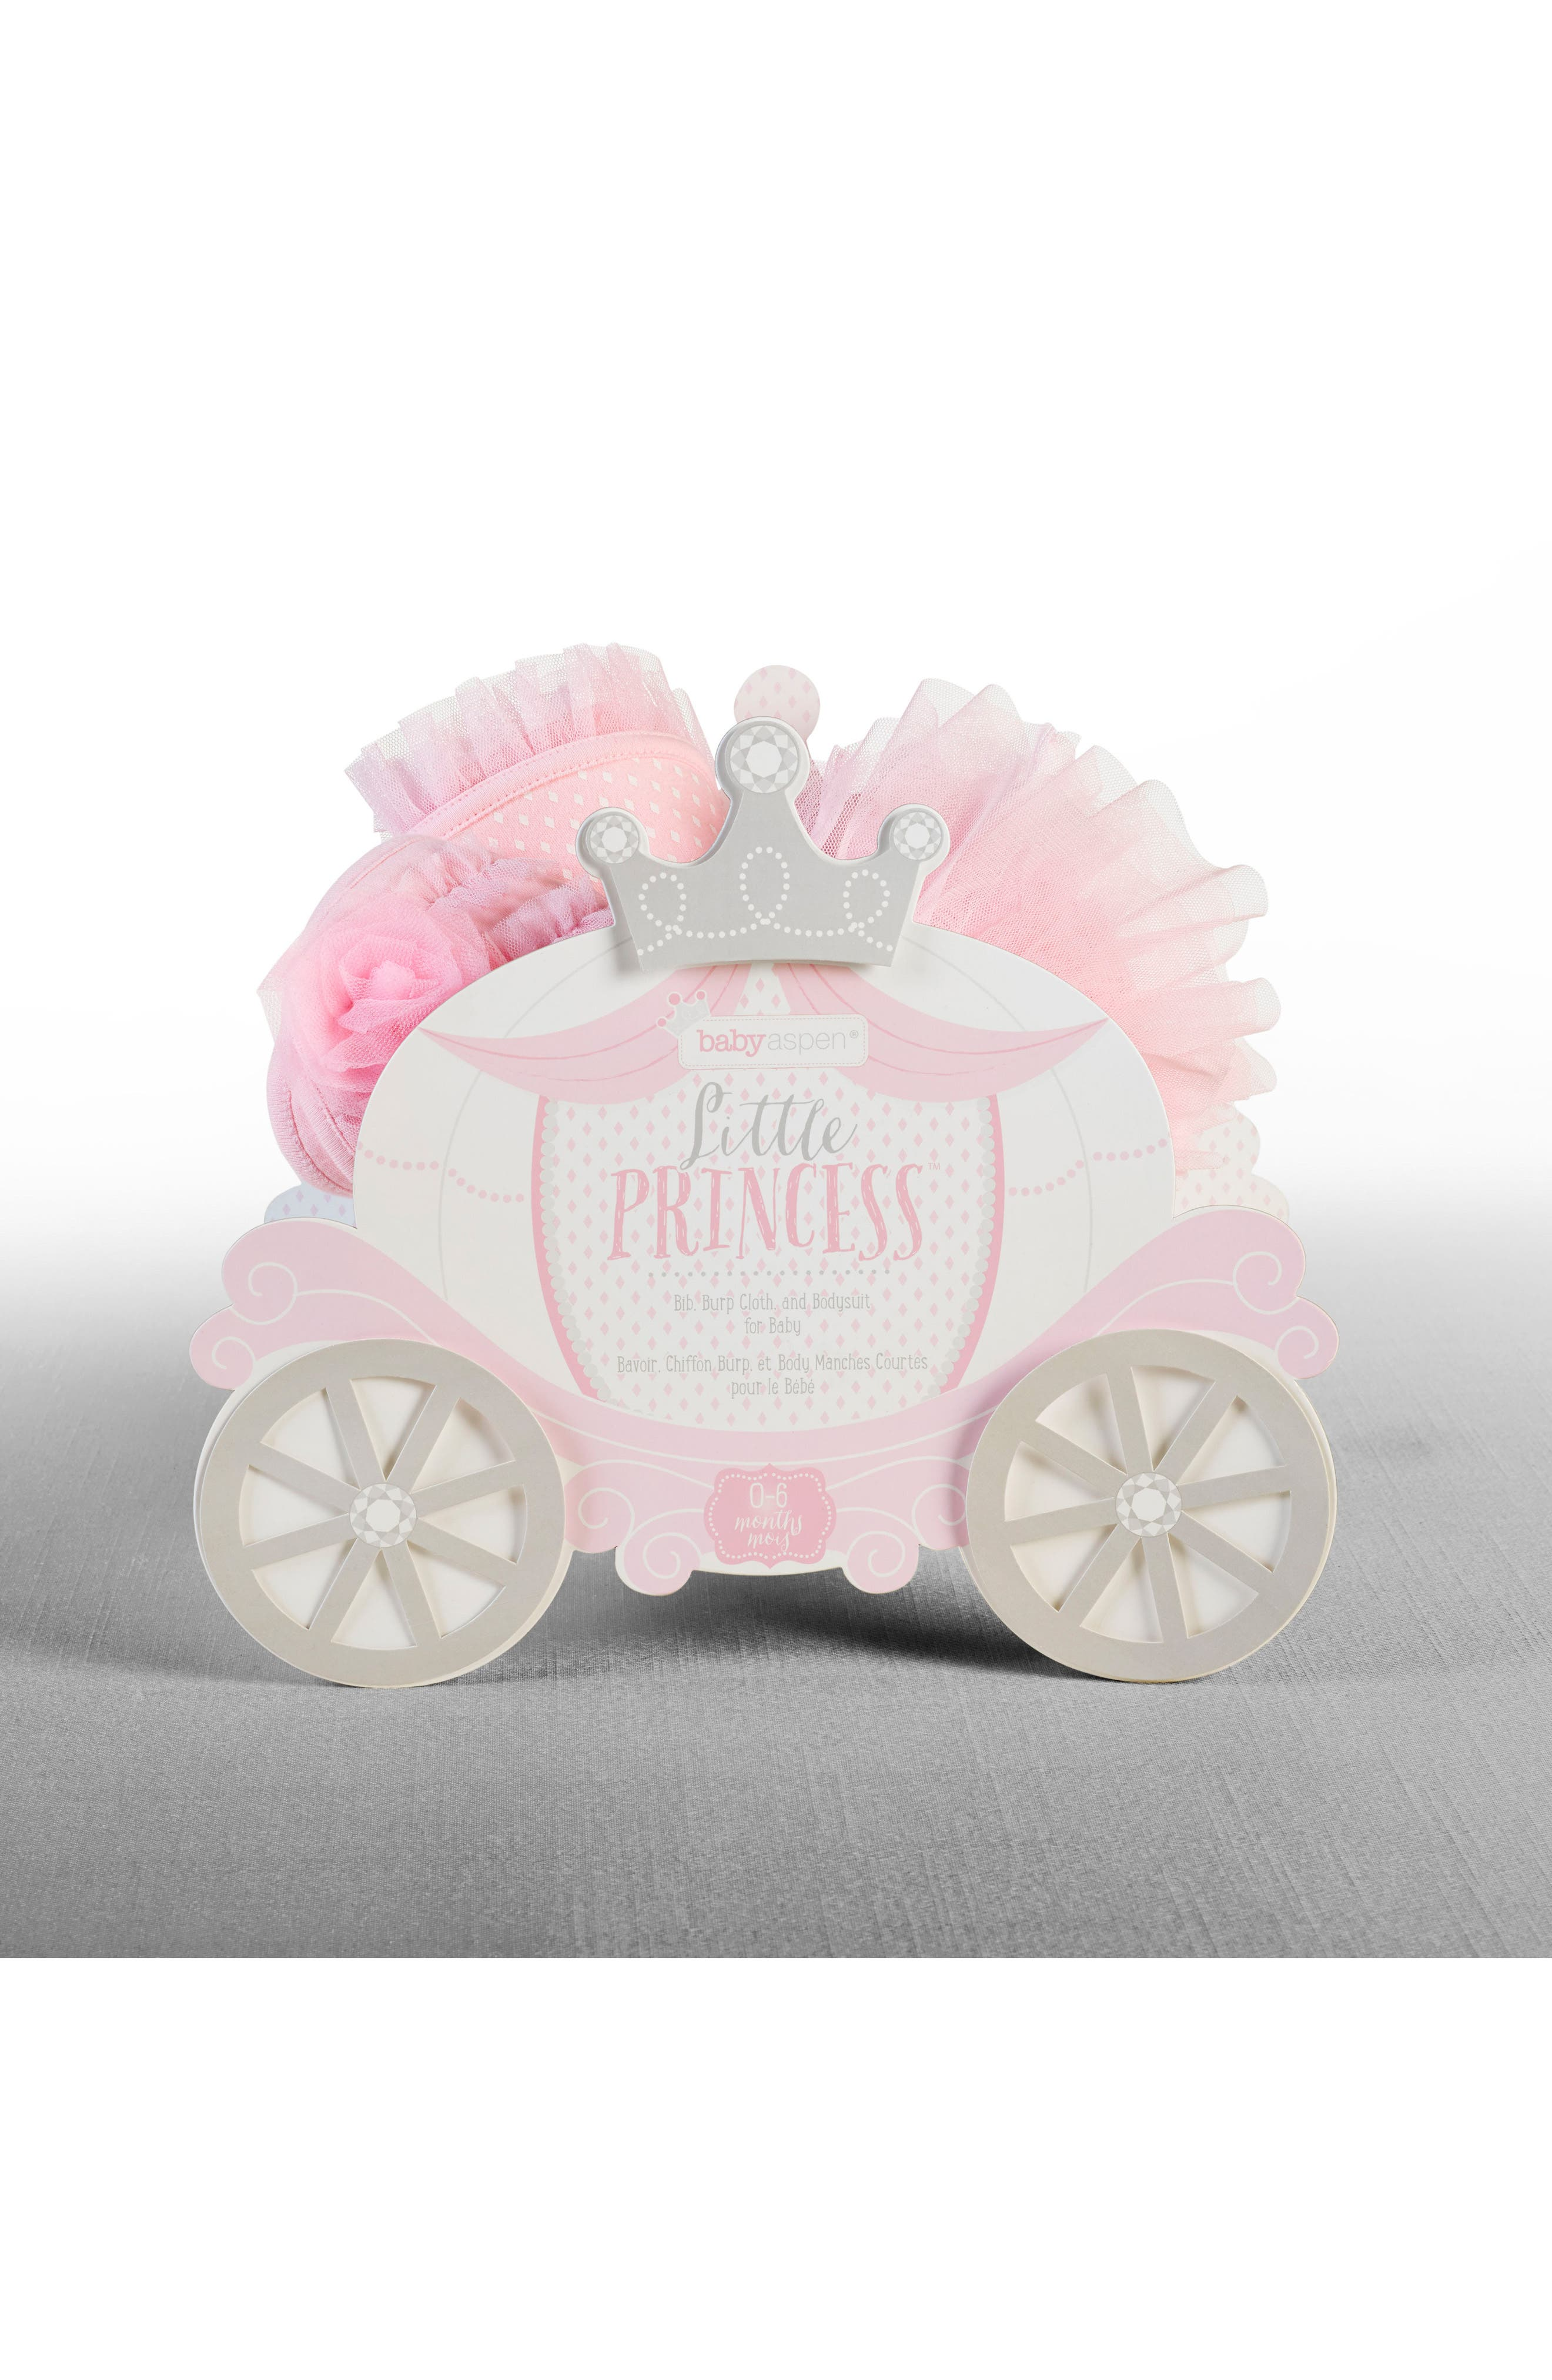 Little Princess Ceramic Carriage Bank,                             Alternate thumbnail 2, color,                             CARRIAGE